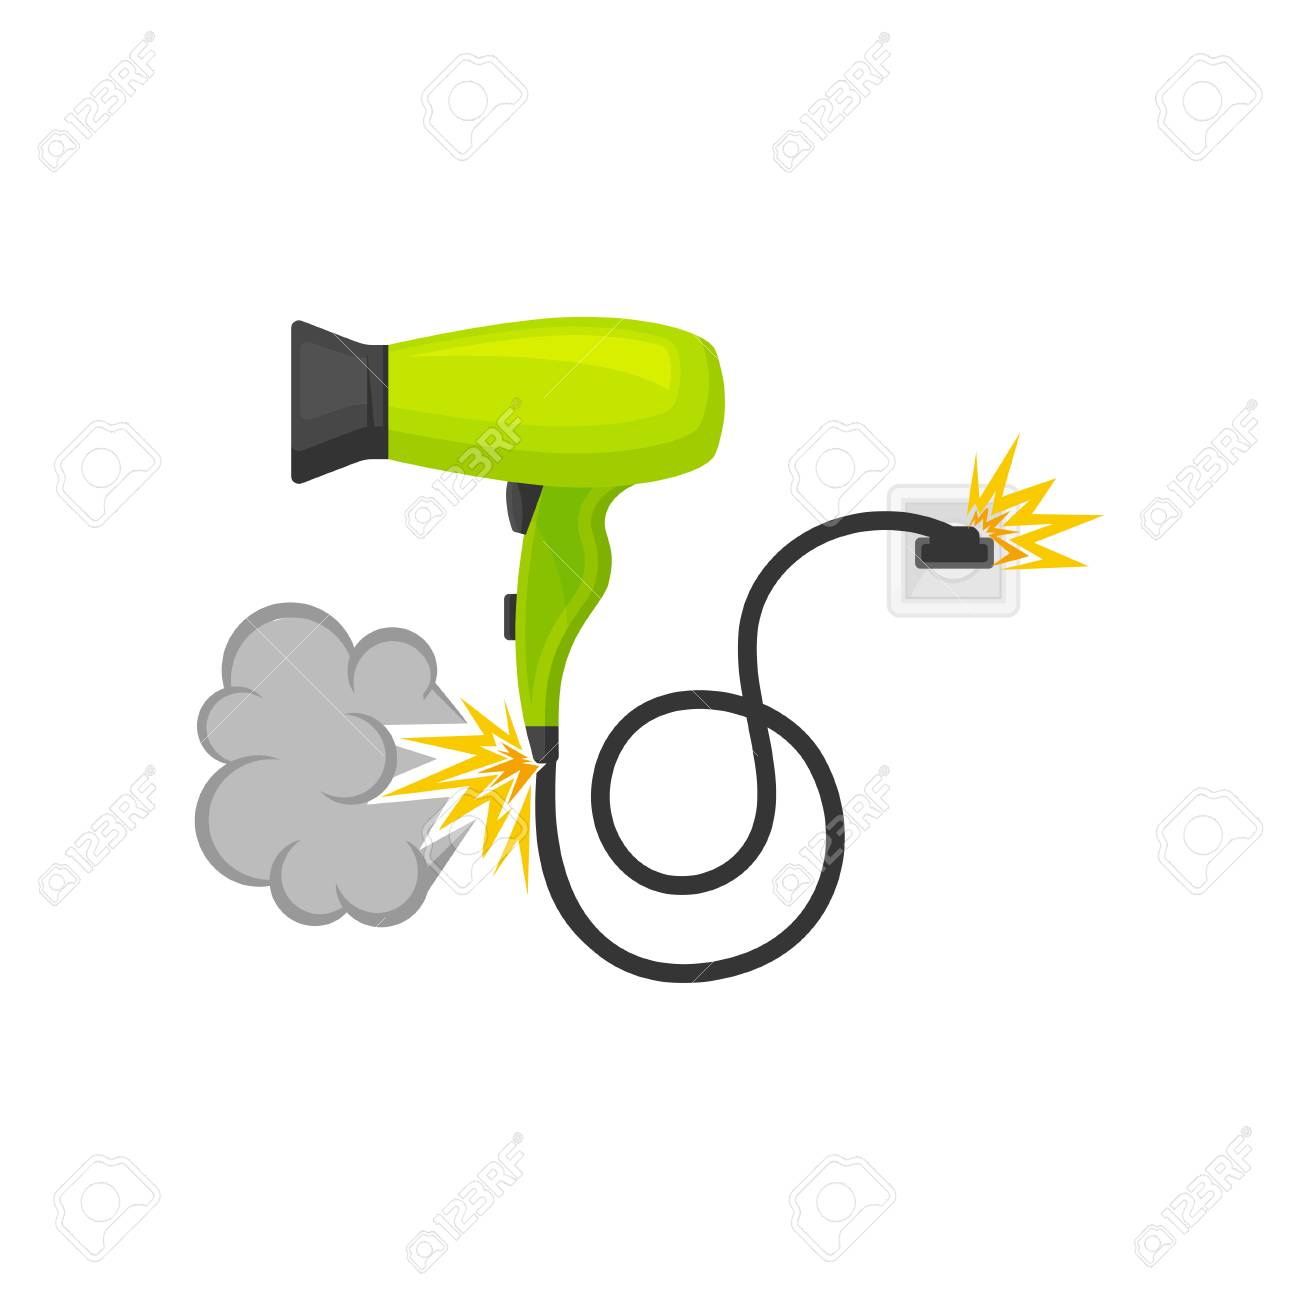 hight resolution of broken burning hair dryer damaged home appliance vector illustration isolated on a white background